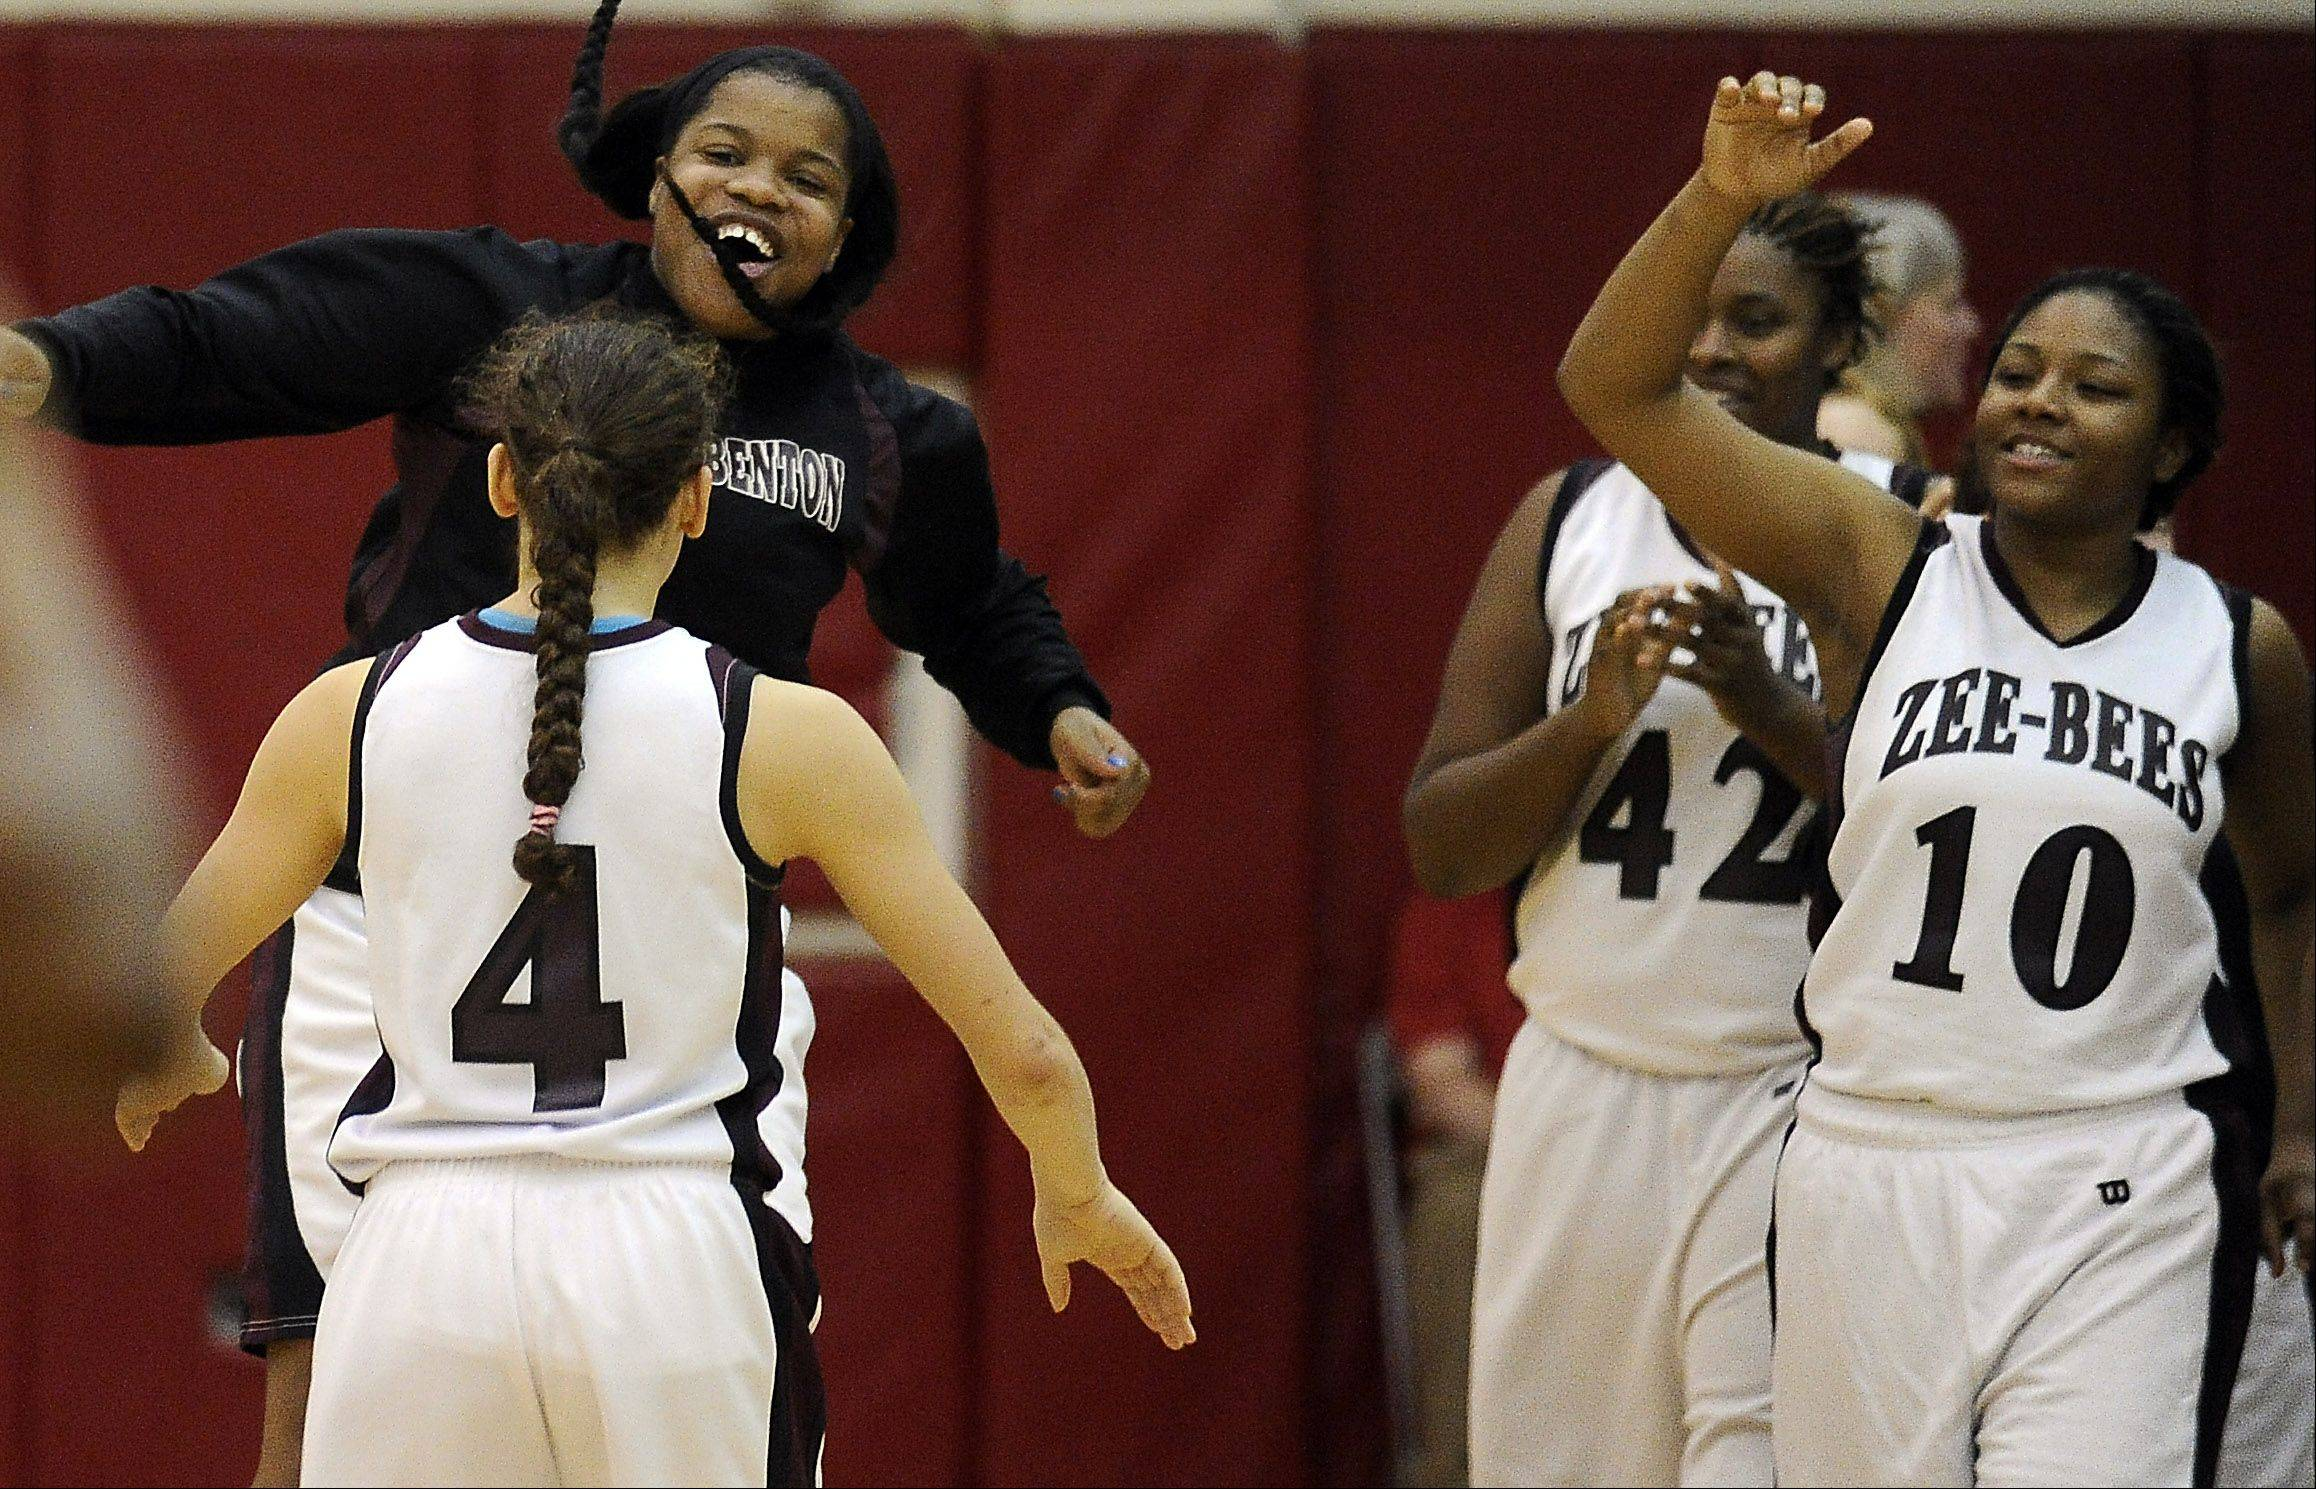 Zion-Benton players celebrate their win over Stevenson in girls varsity basketball sectional semi-finals at Palatine High School on Monday.